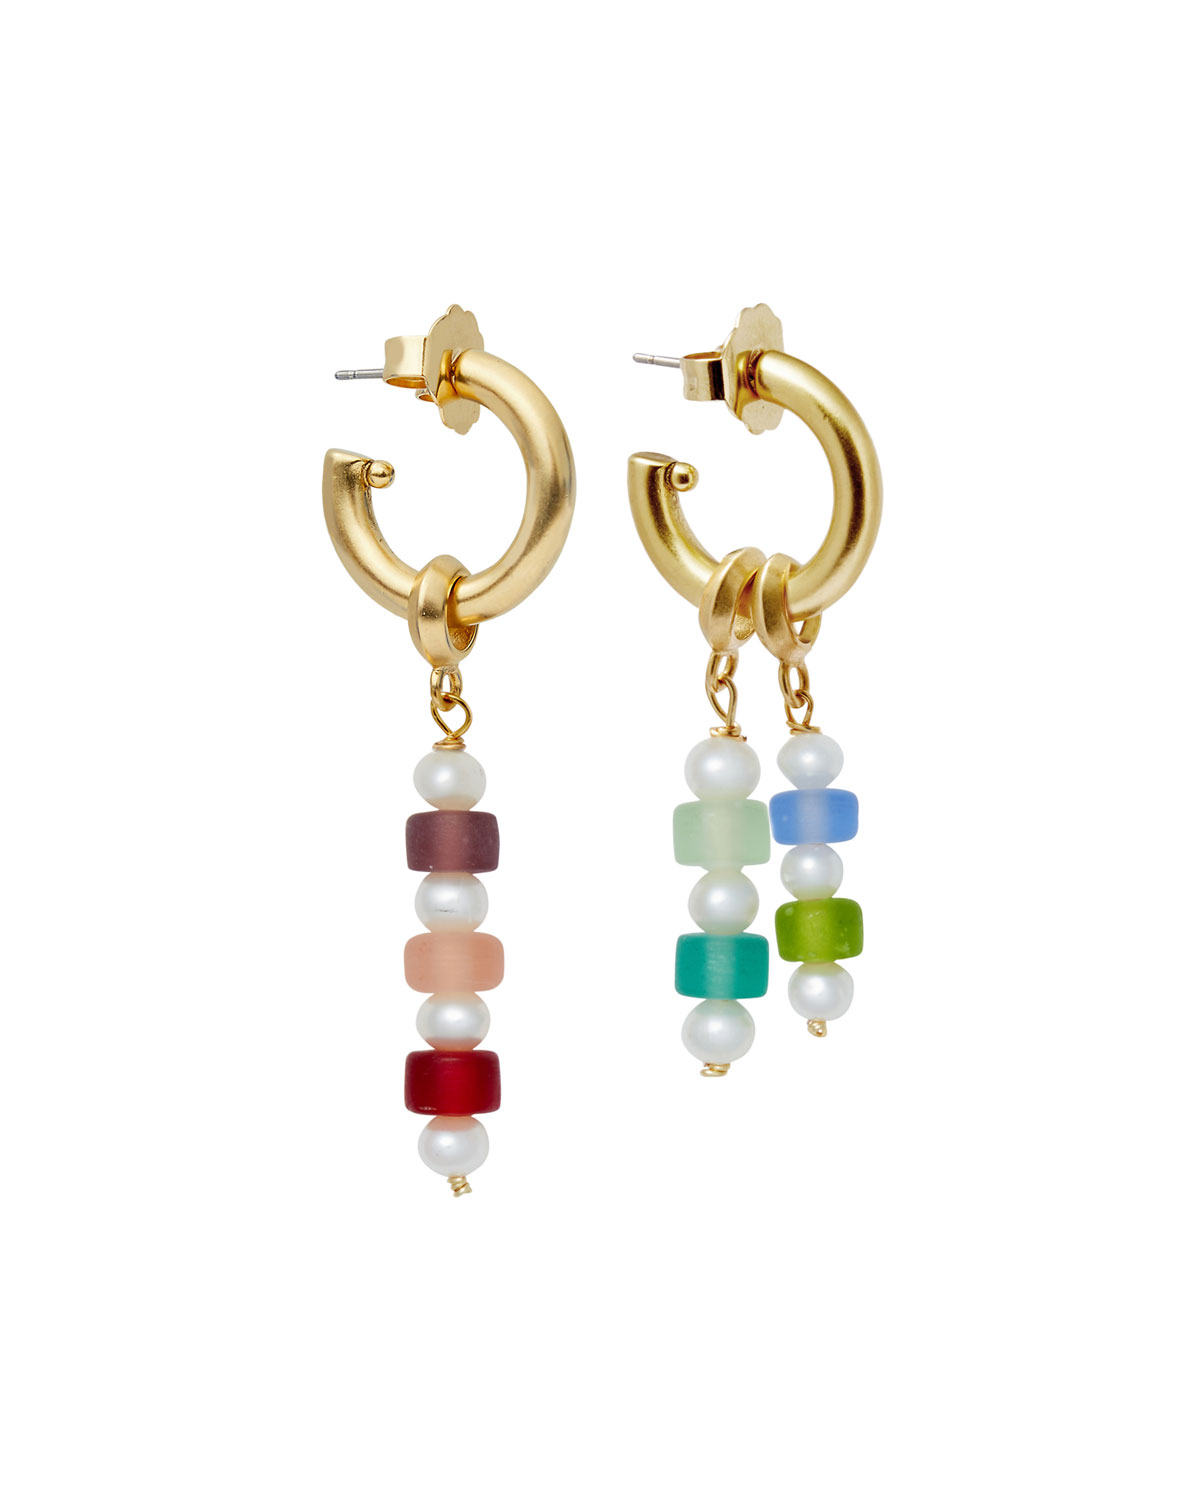 Frosted Bead and Hoop Earrings